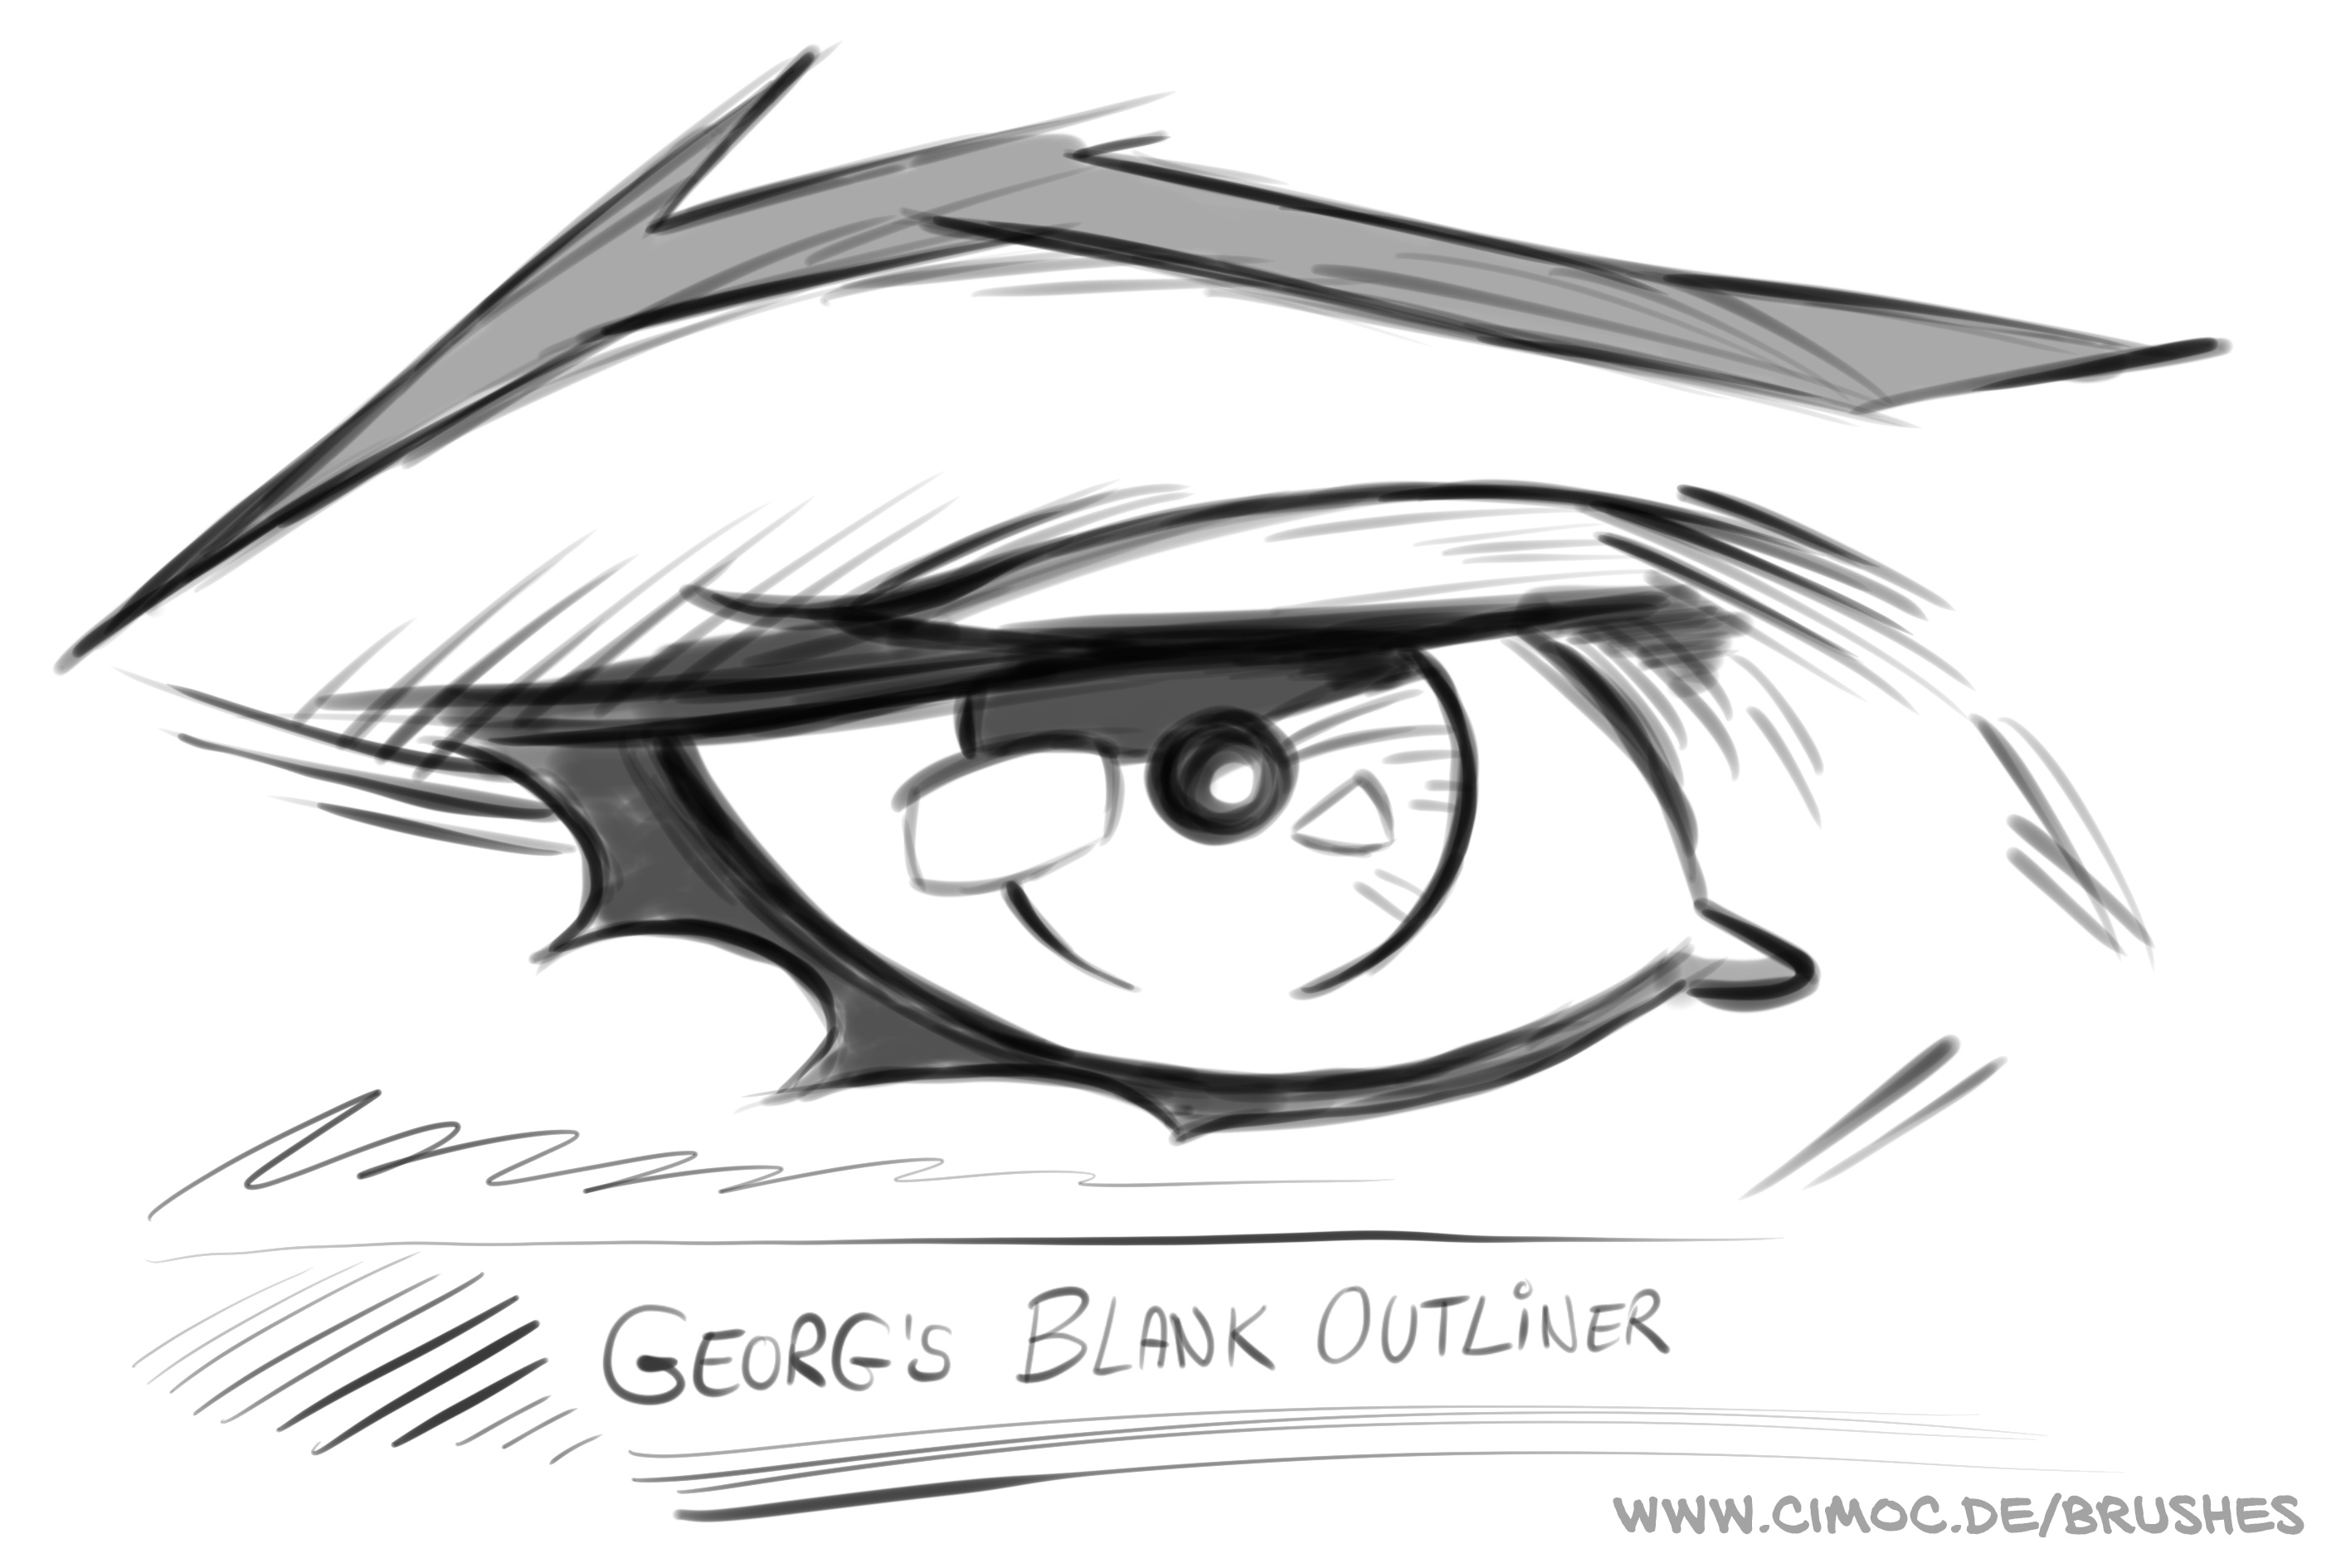 If you like the sketch brushes check out my other brush sets too https sellfy com georgvw